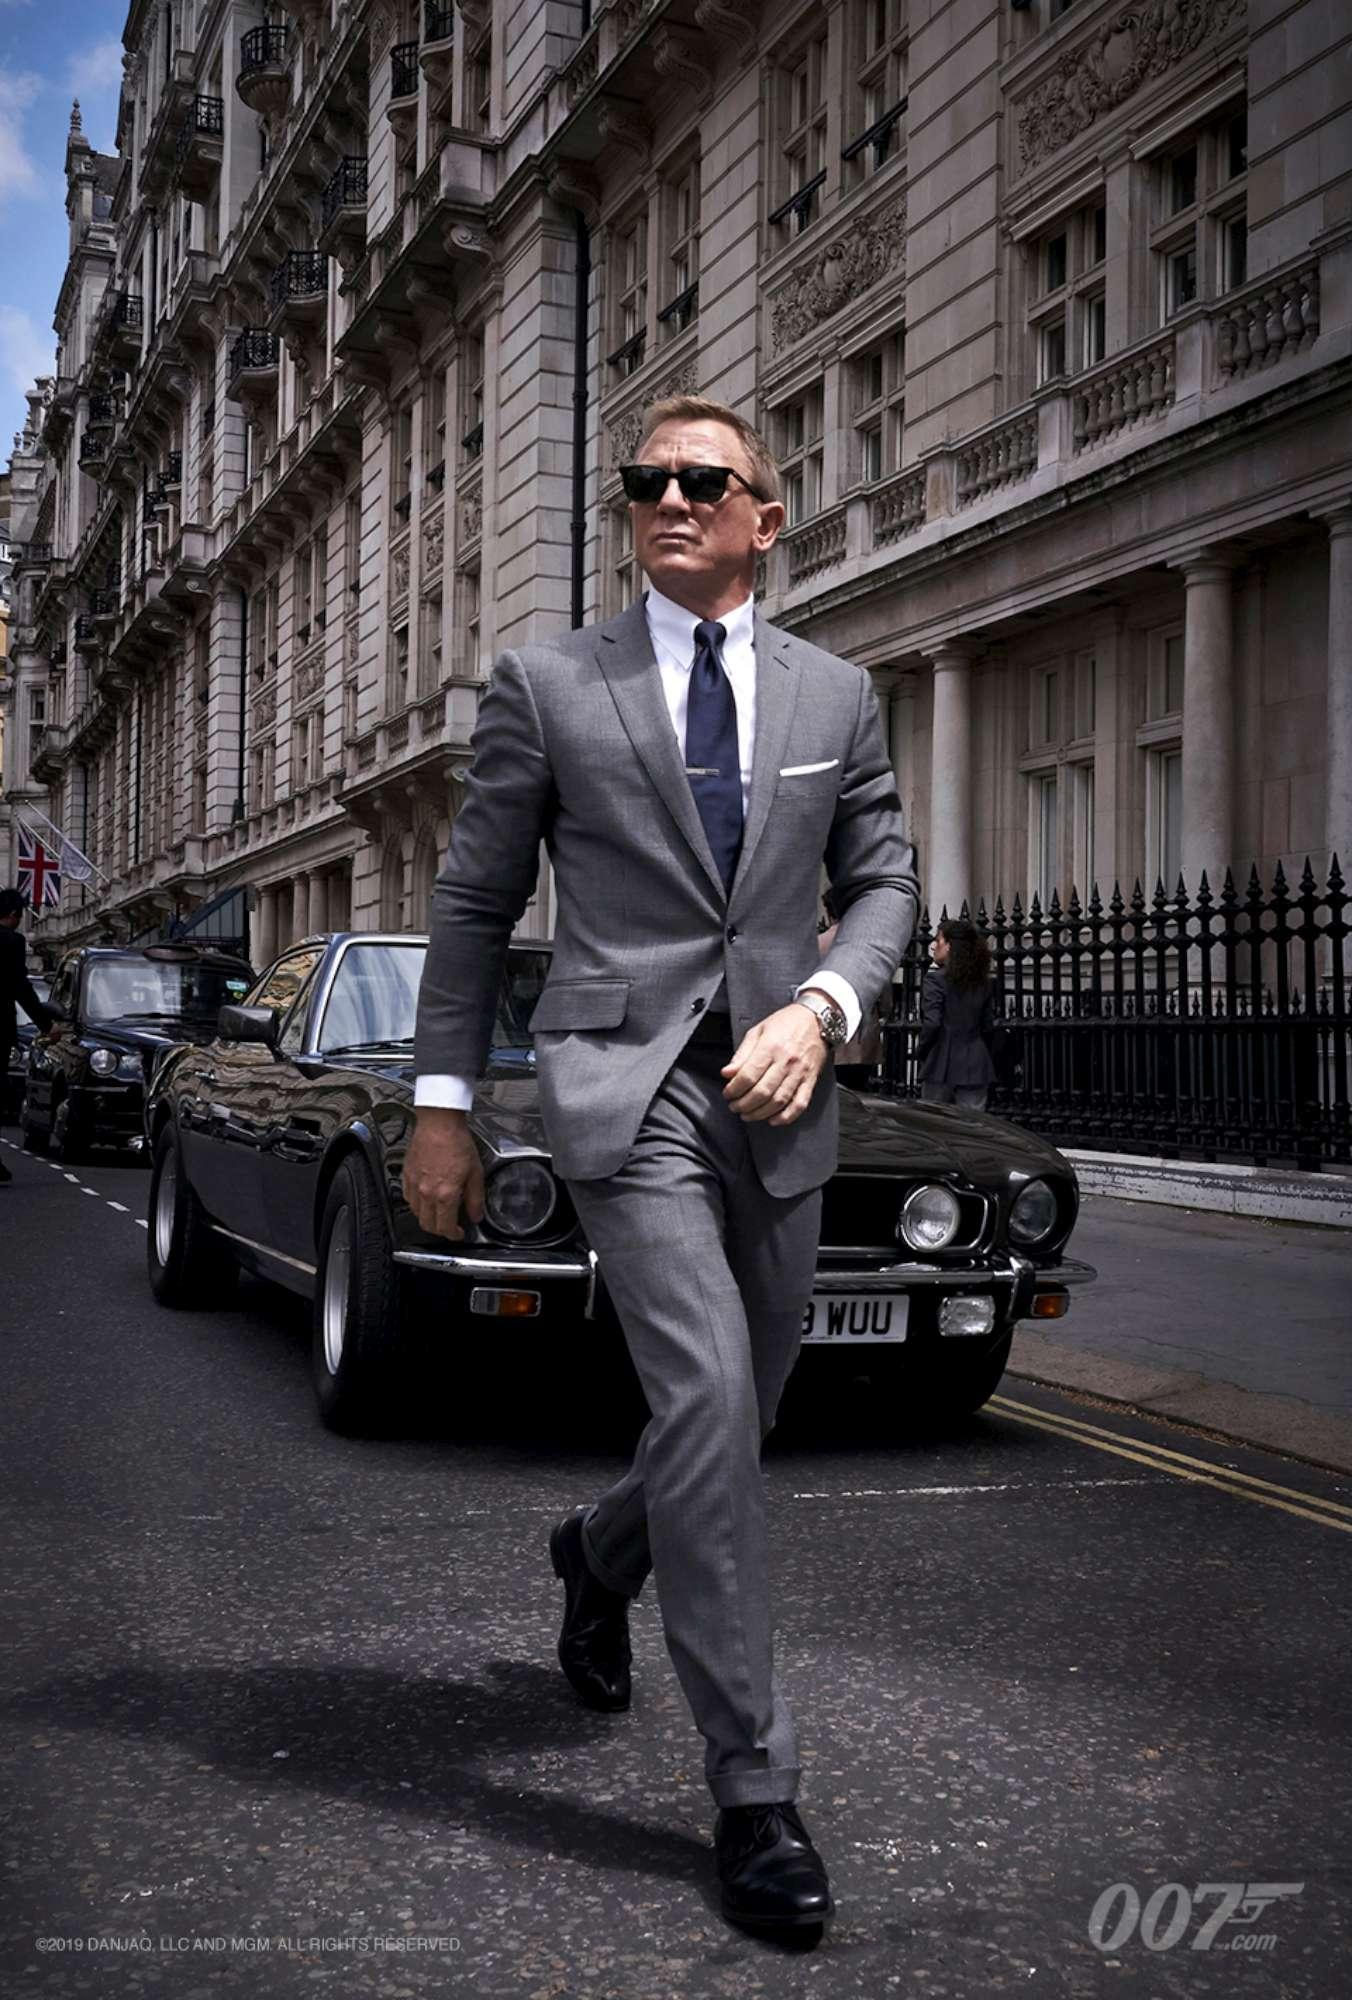 Uomo, impeccabili come Daniel Craig: cosa copiare a James Bond